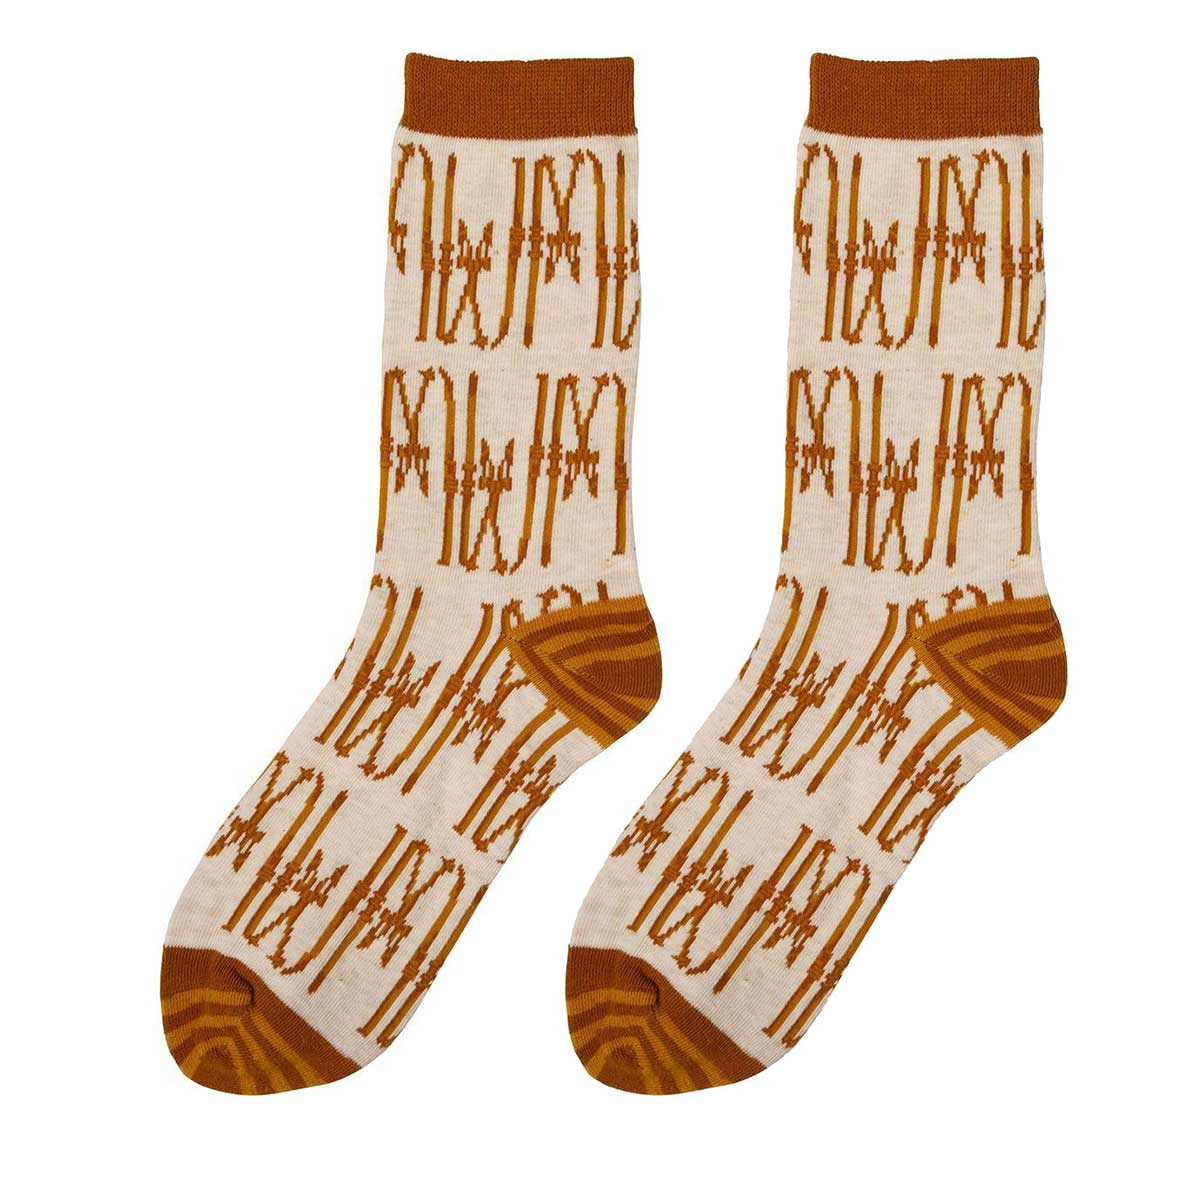 vintage ski print socks in beige and brown